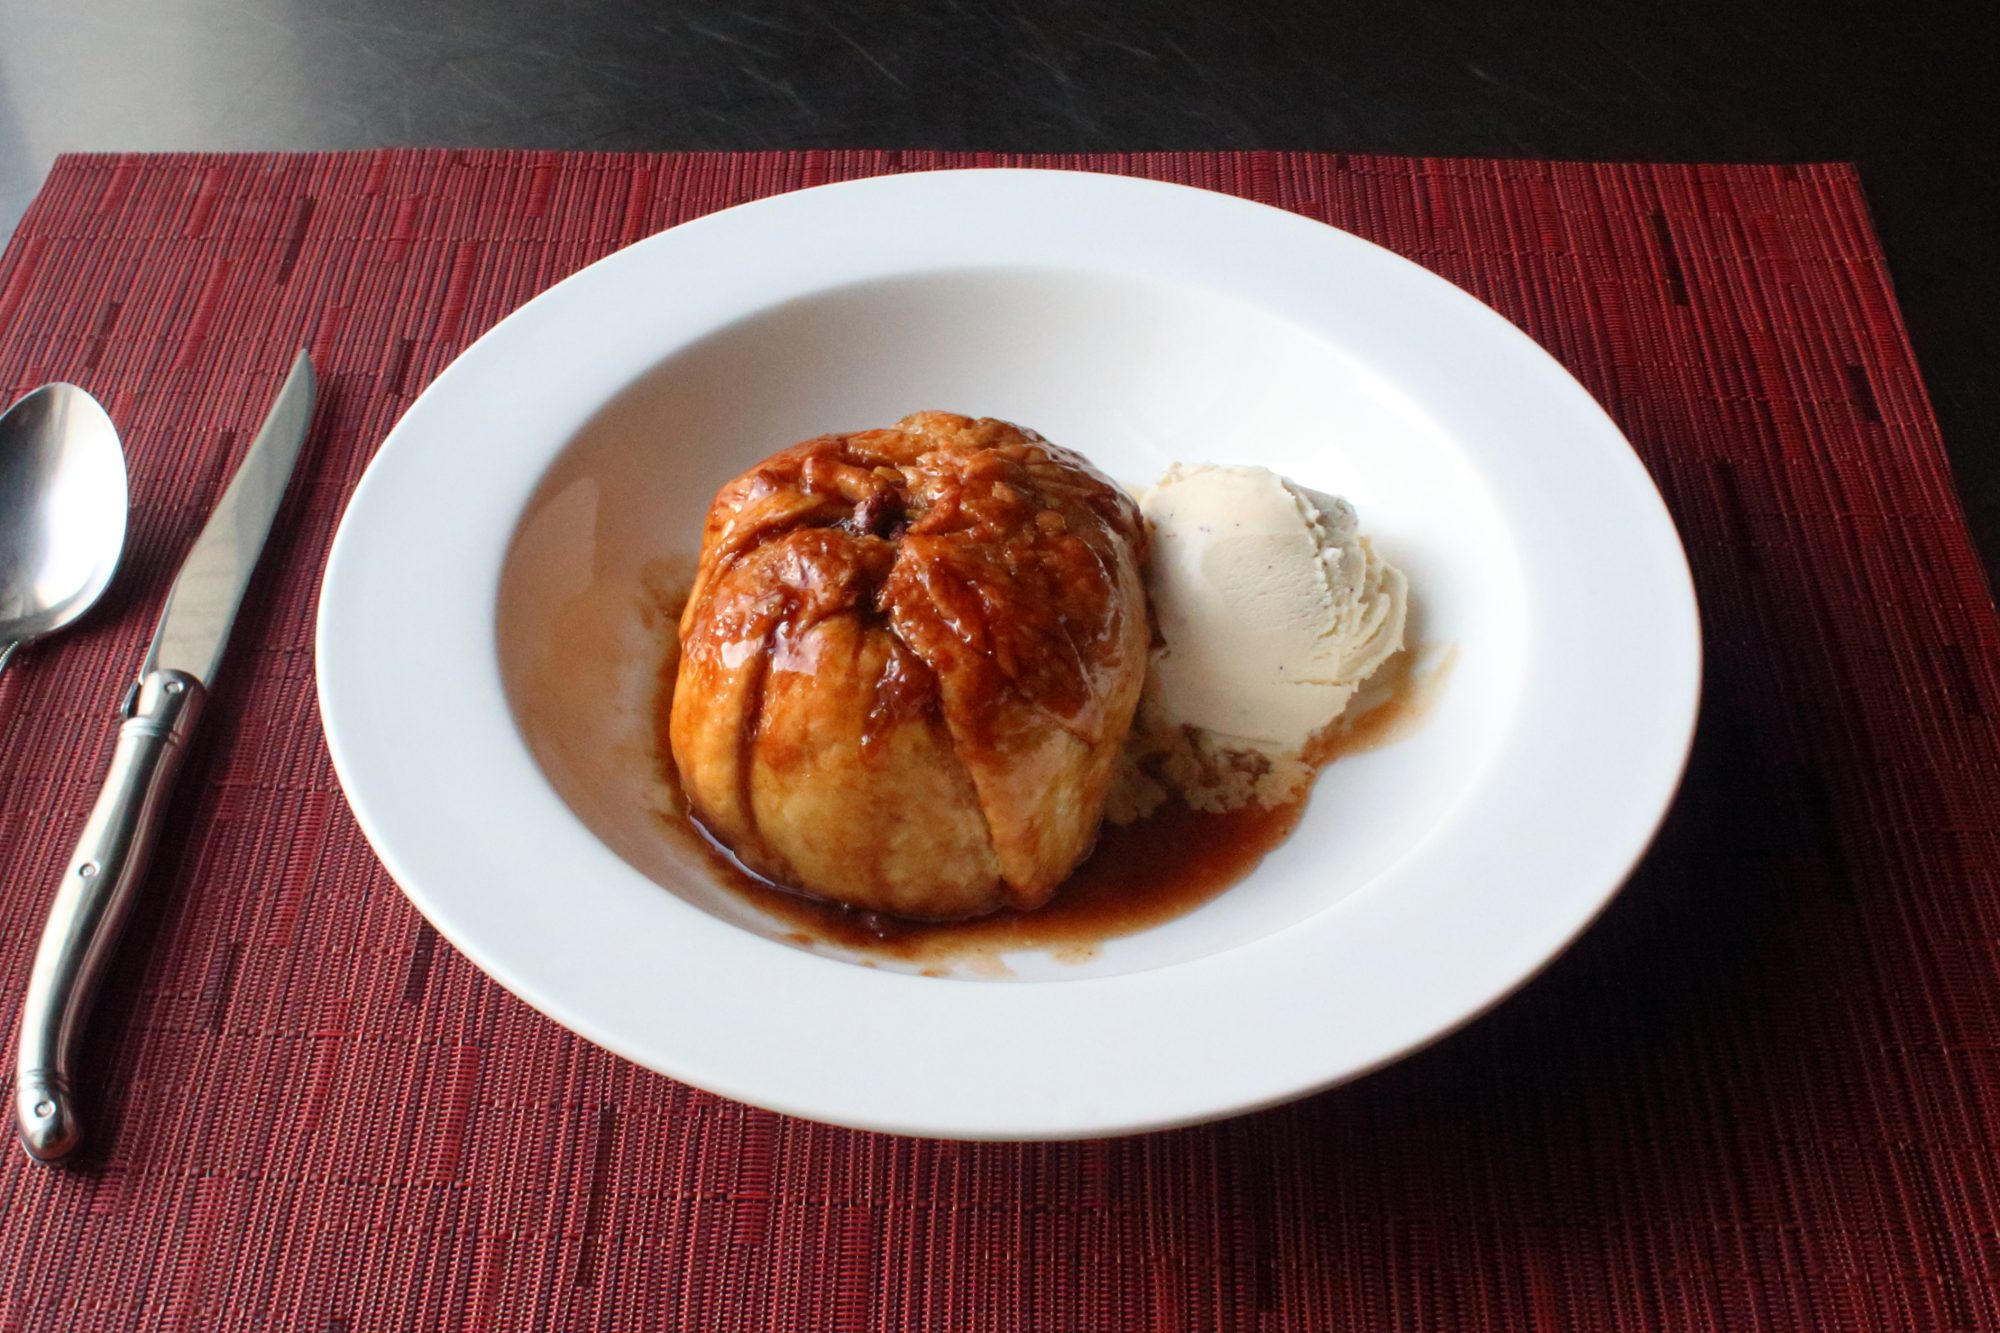 apple dumpling with sauce and ice cream in bowl